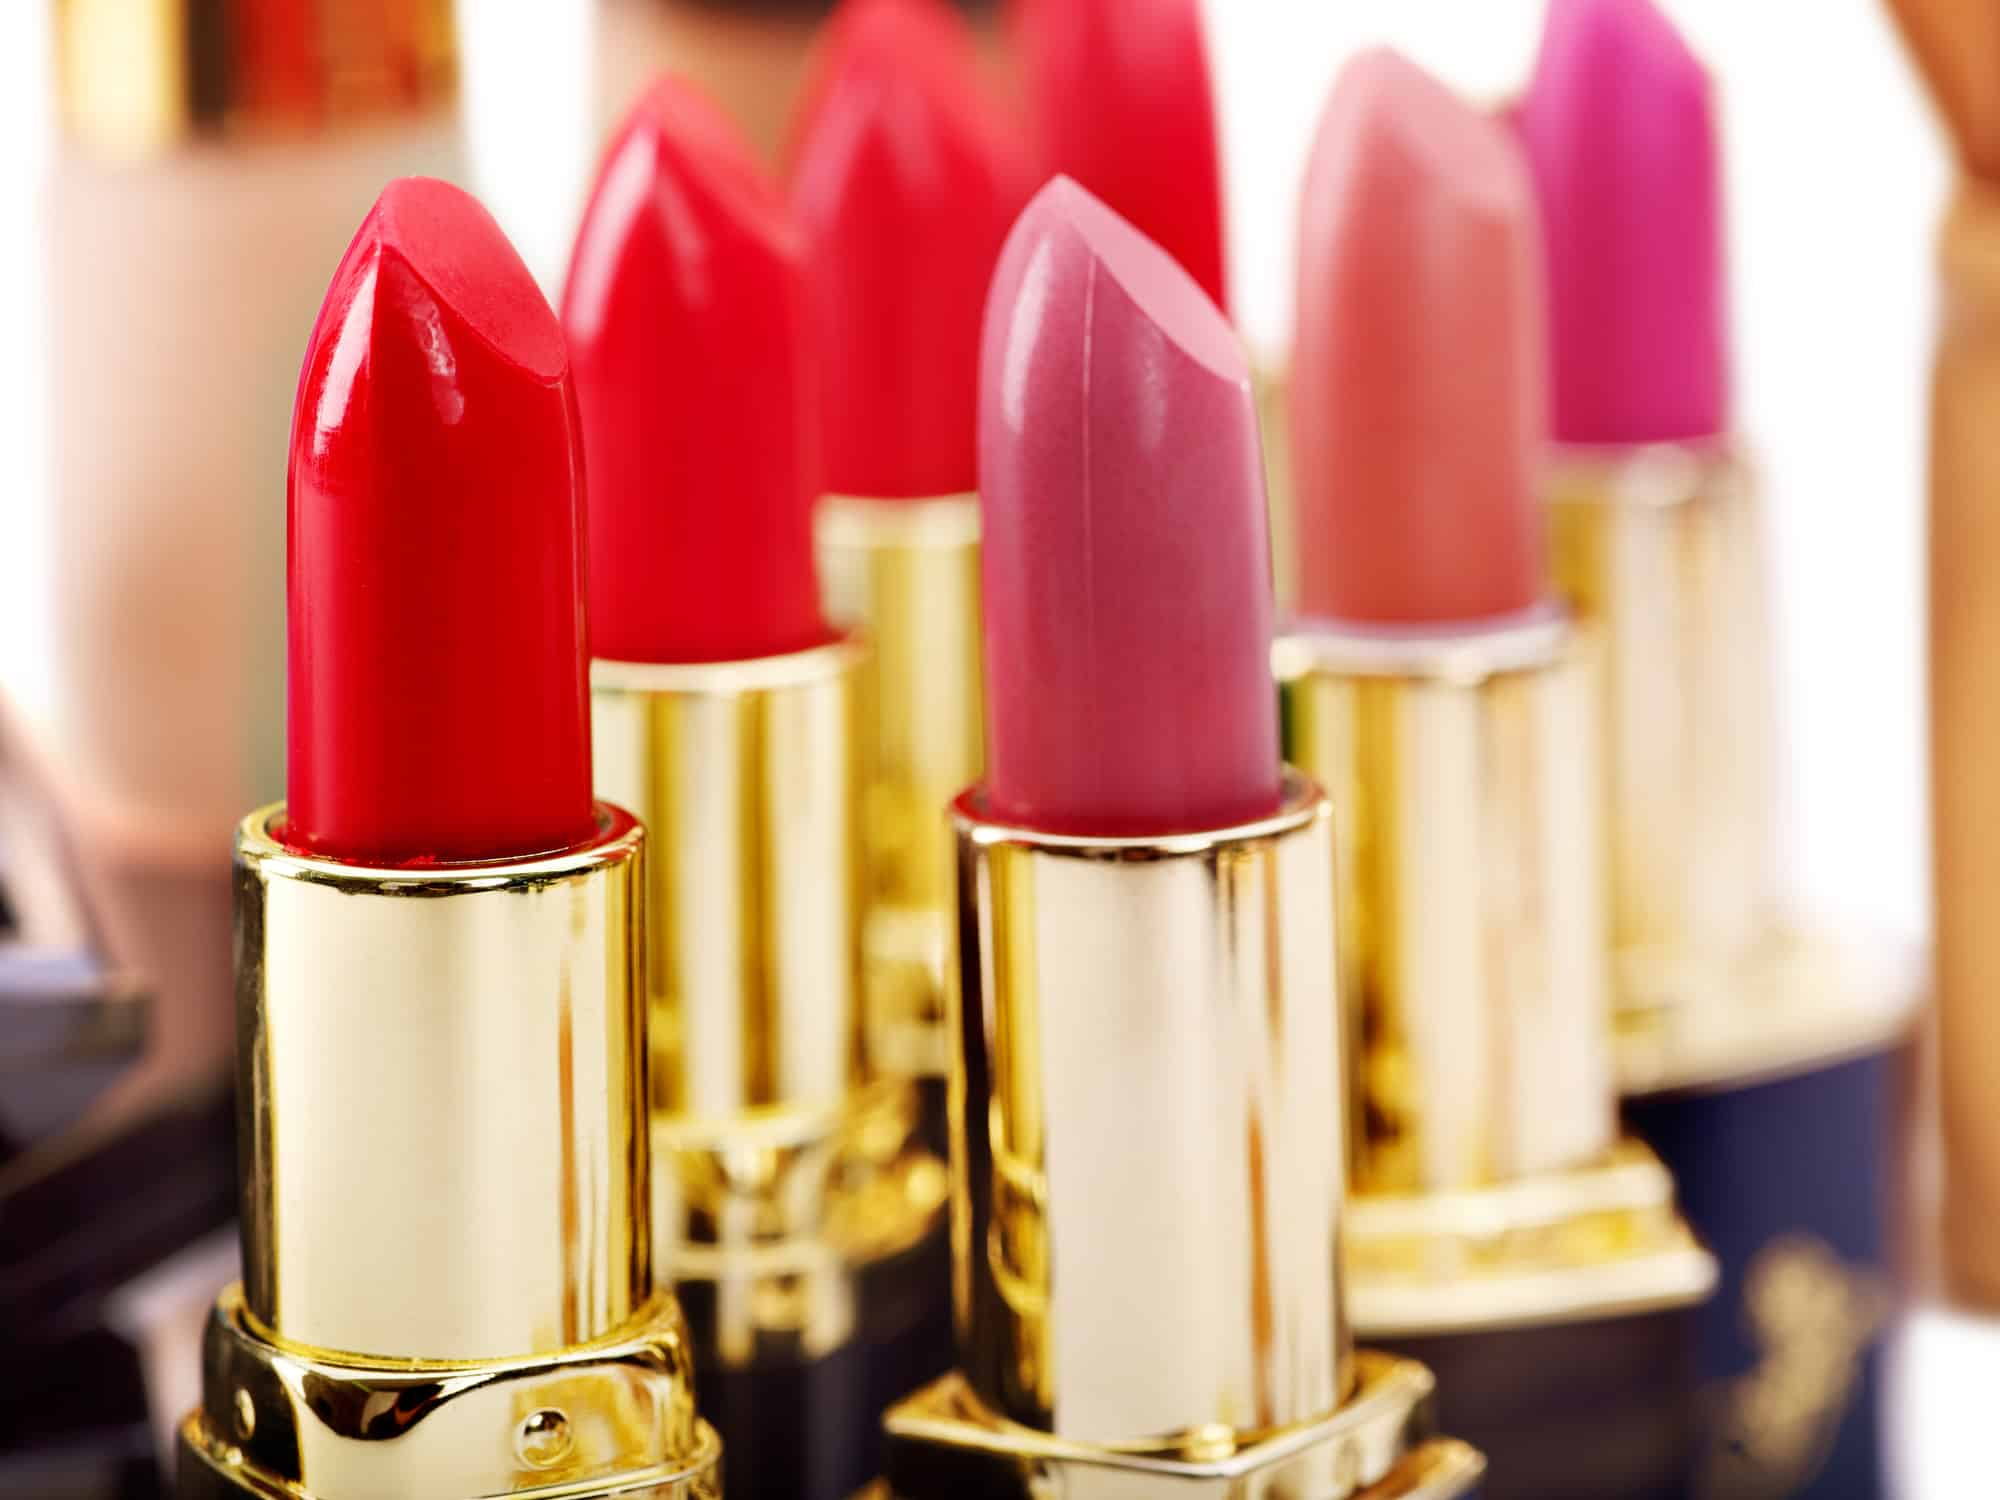 Group of Lipsticks standing